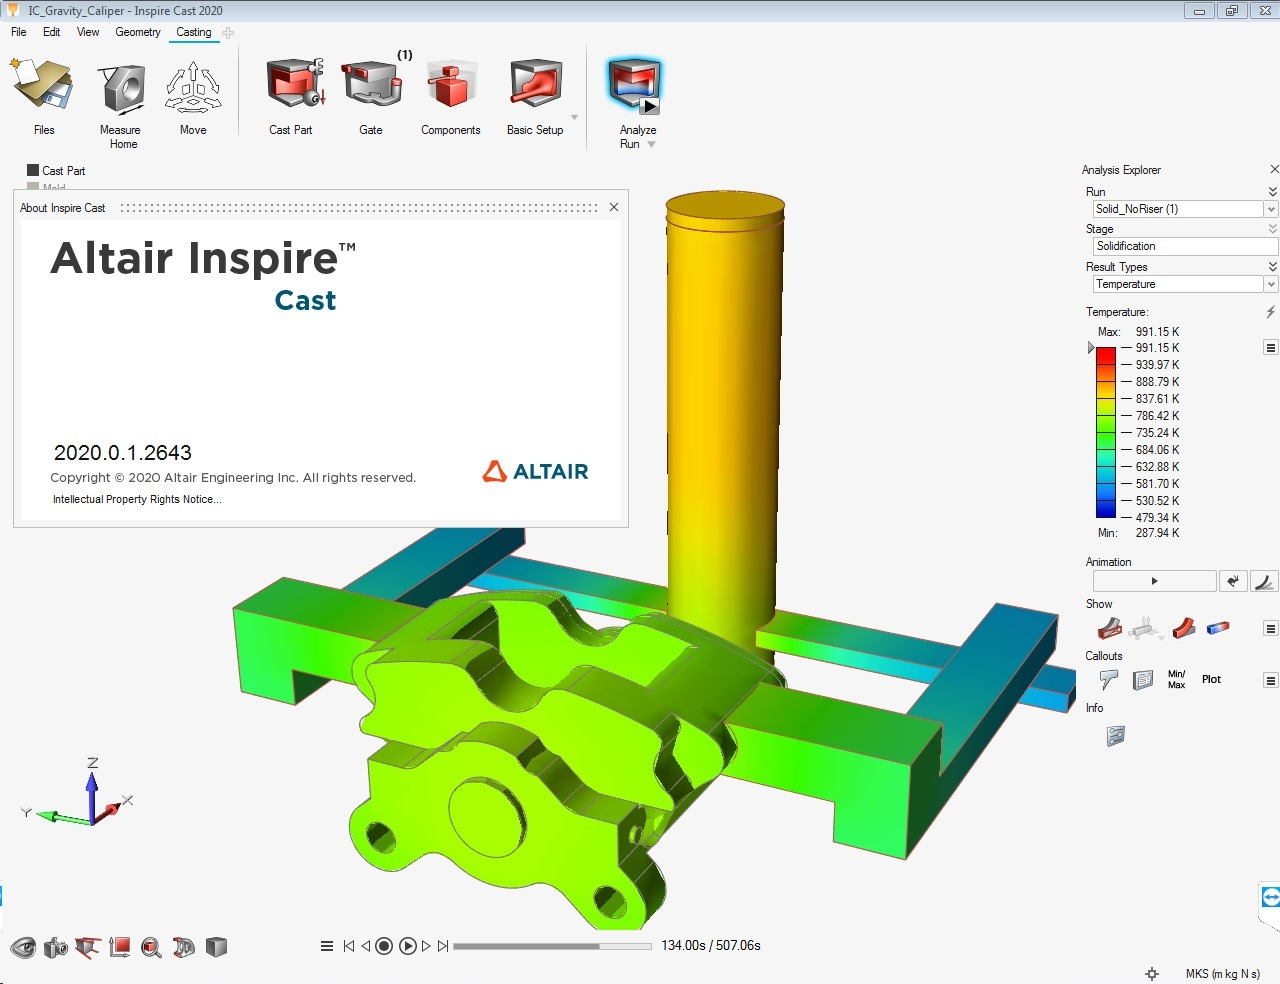 Working with Altair Inspire Cast 2020.0.1 full license